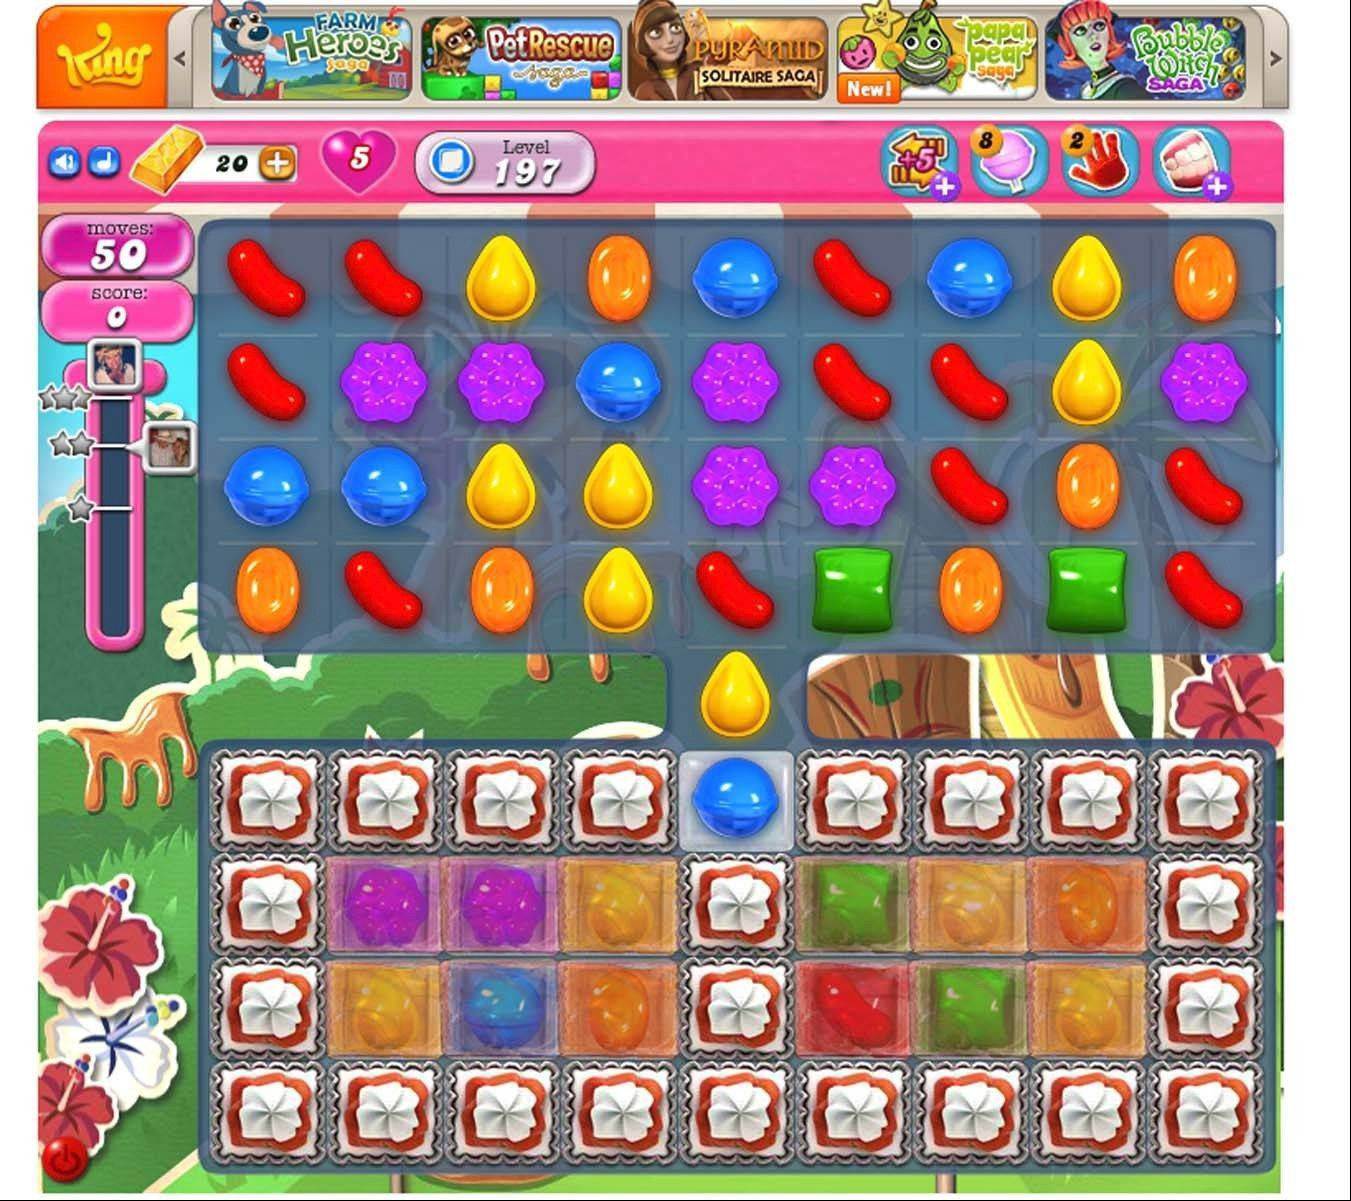 Candy Crush Saga has 500 levels. This is what Level 197 looks like.